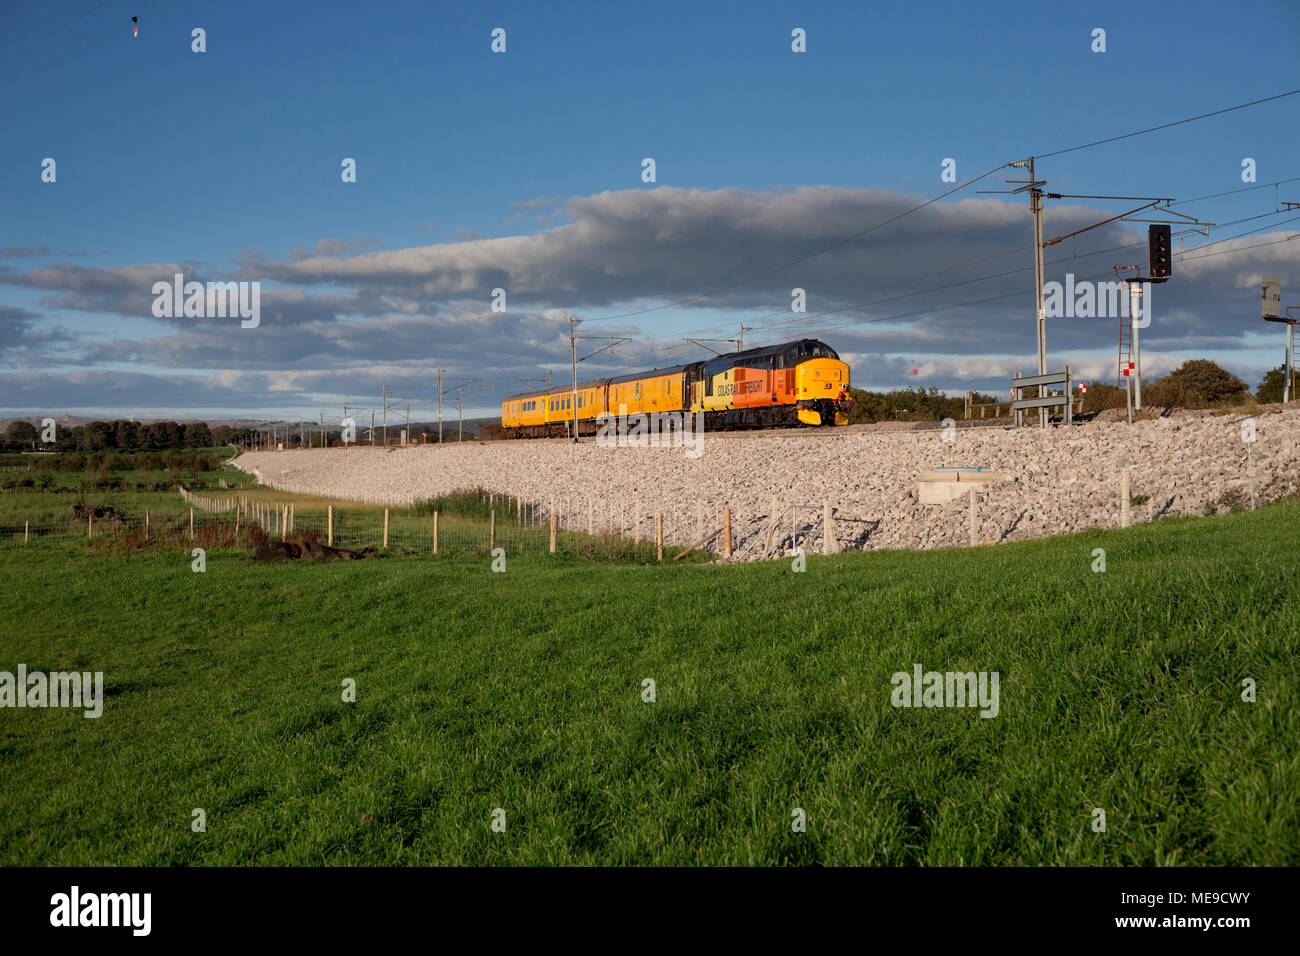 A Colas Railfreight class 37 locomotive on the west coast main line with a Network Rail infrastructure monitoring train Stock Photo